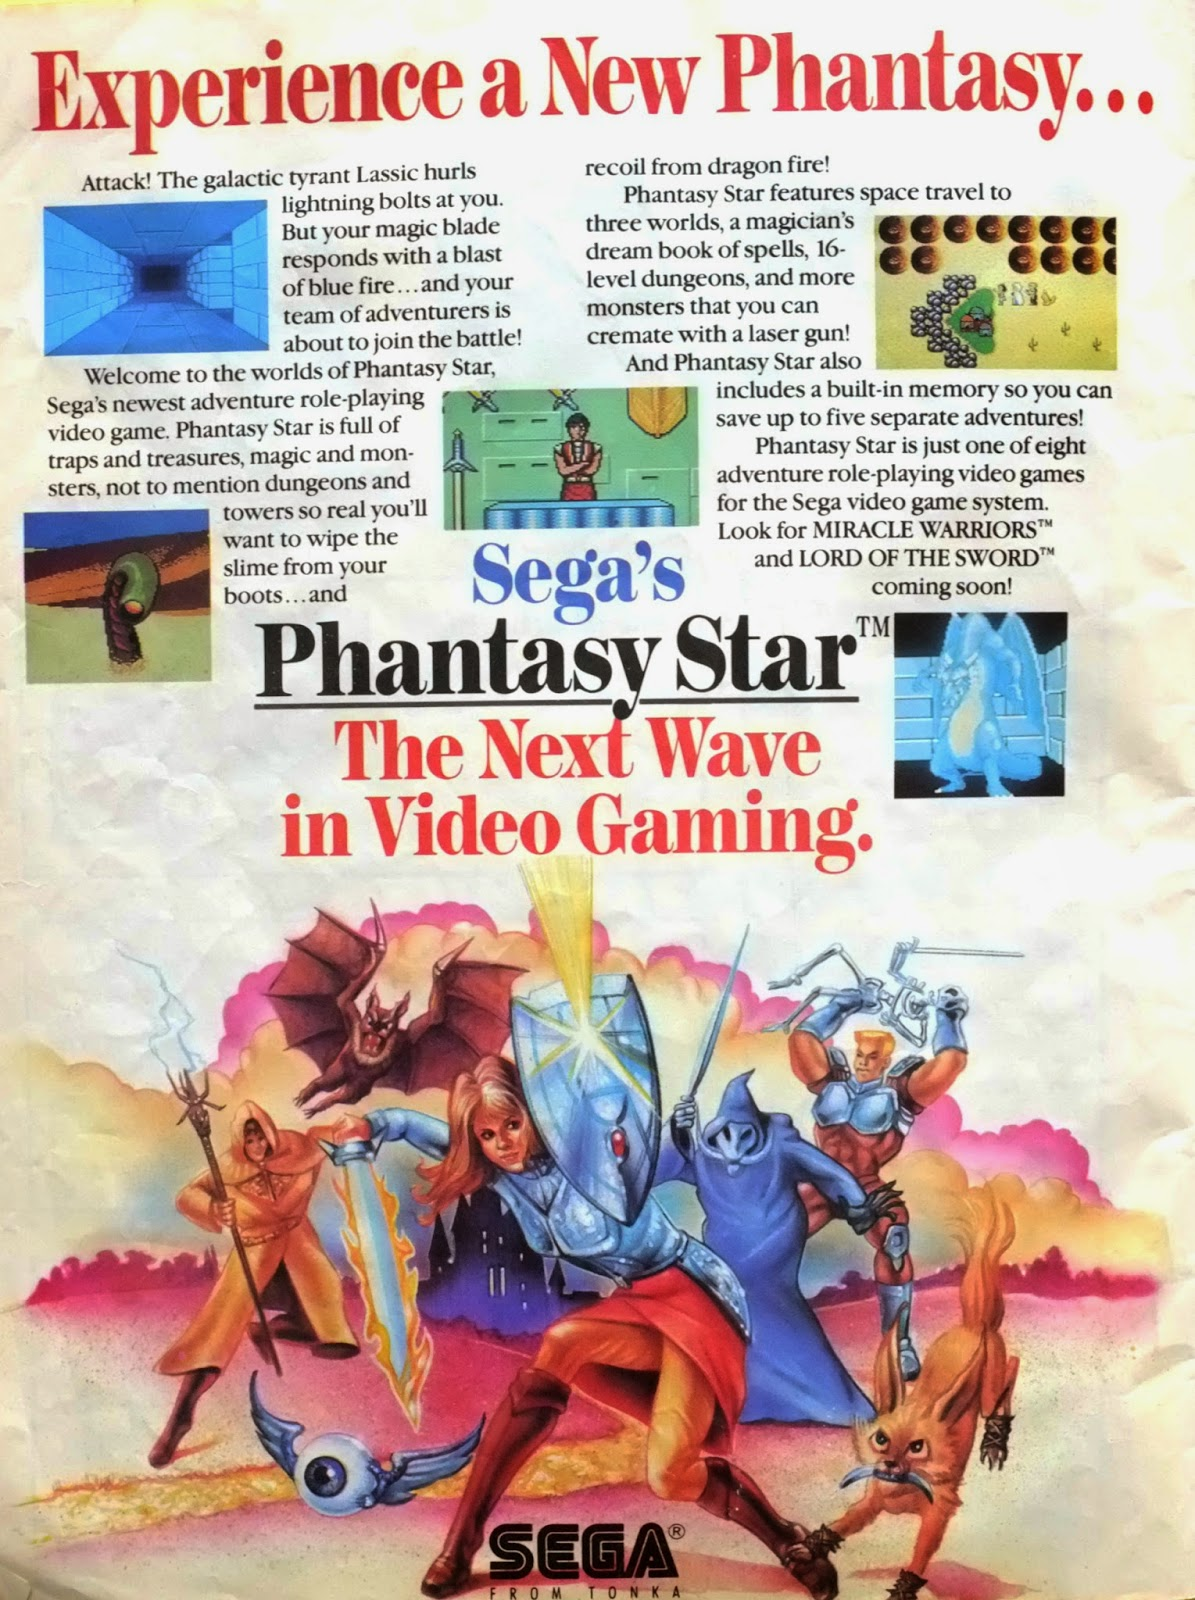 Phantasy Star for Sega Master System advertisement